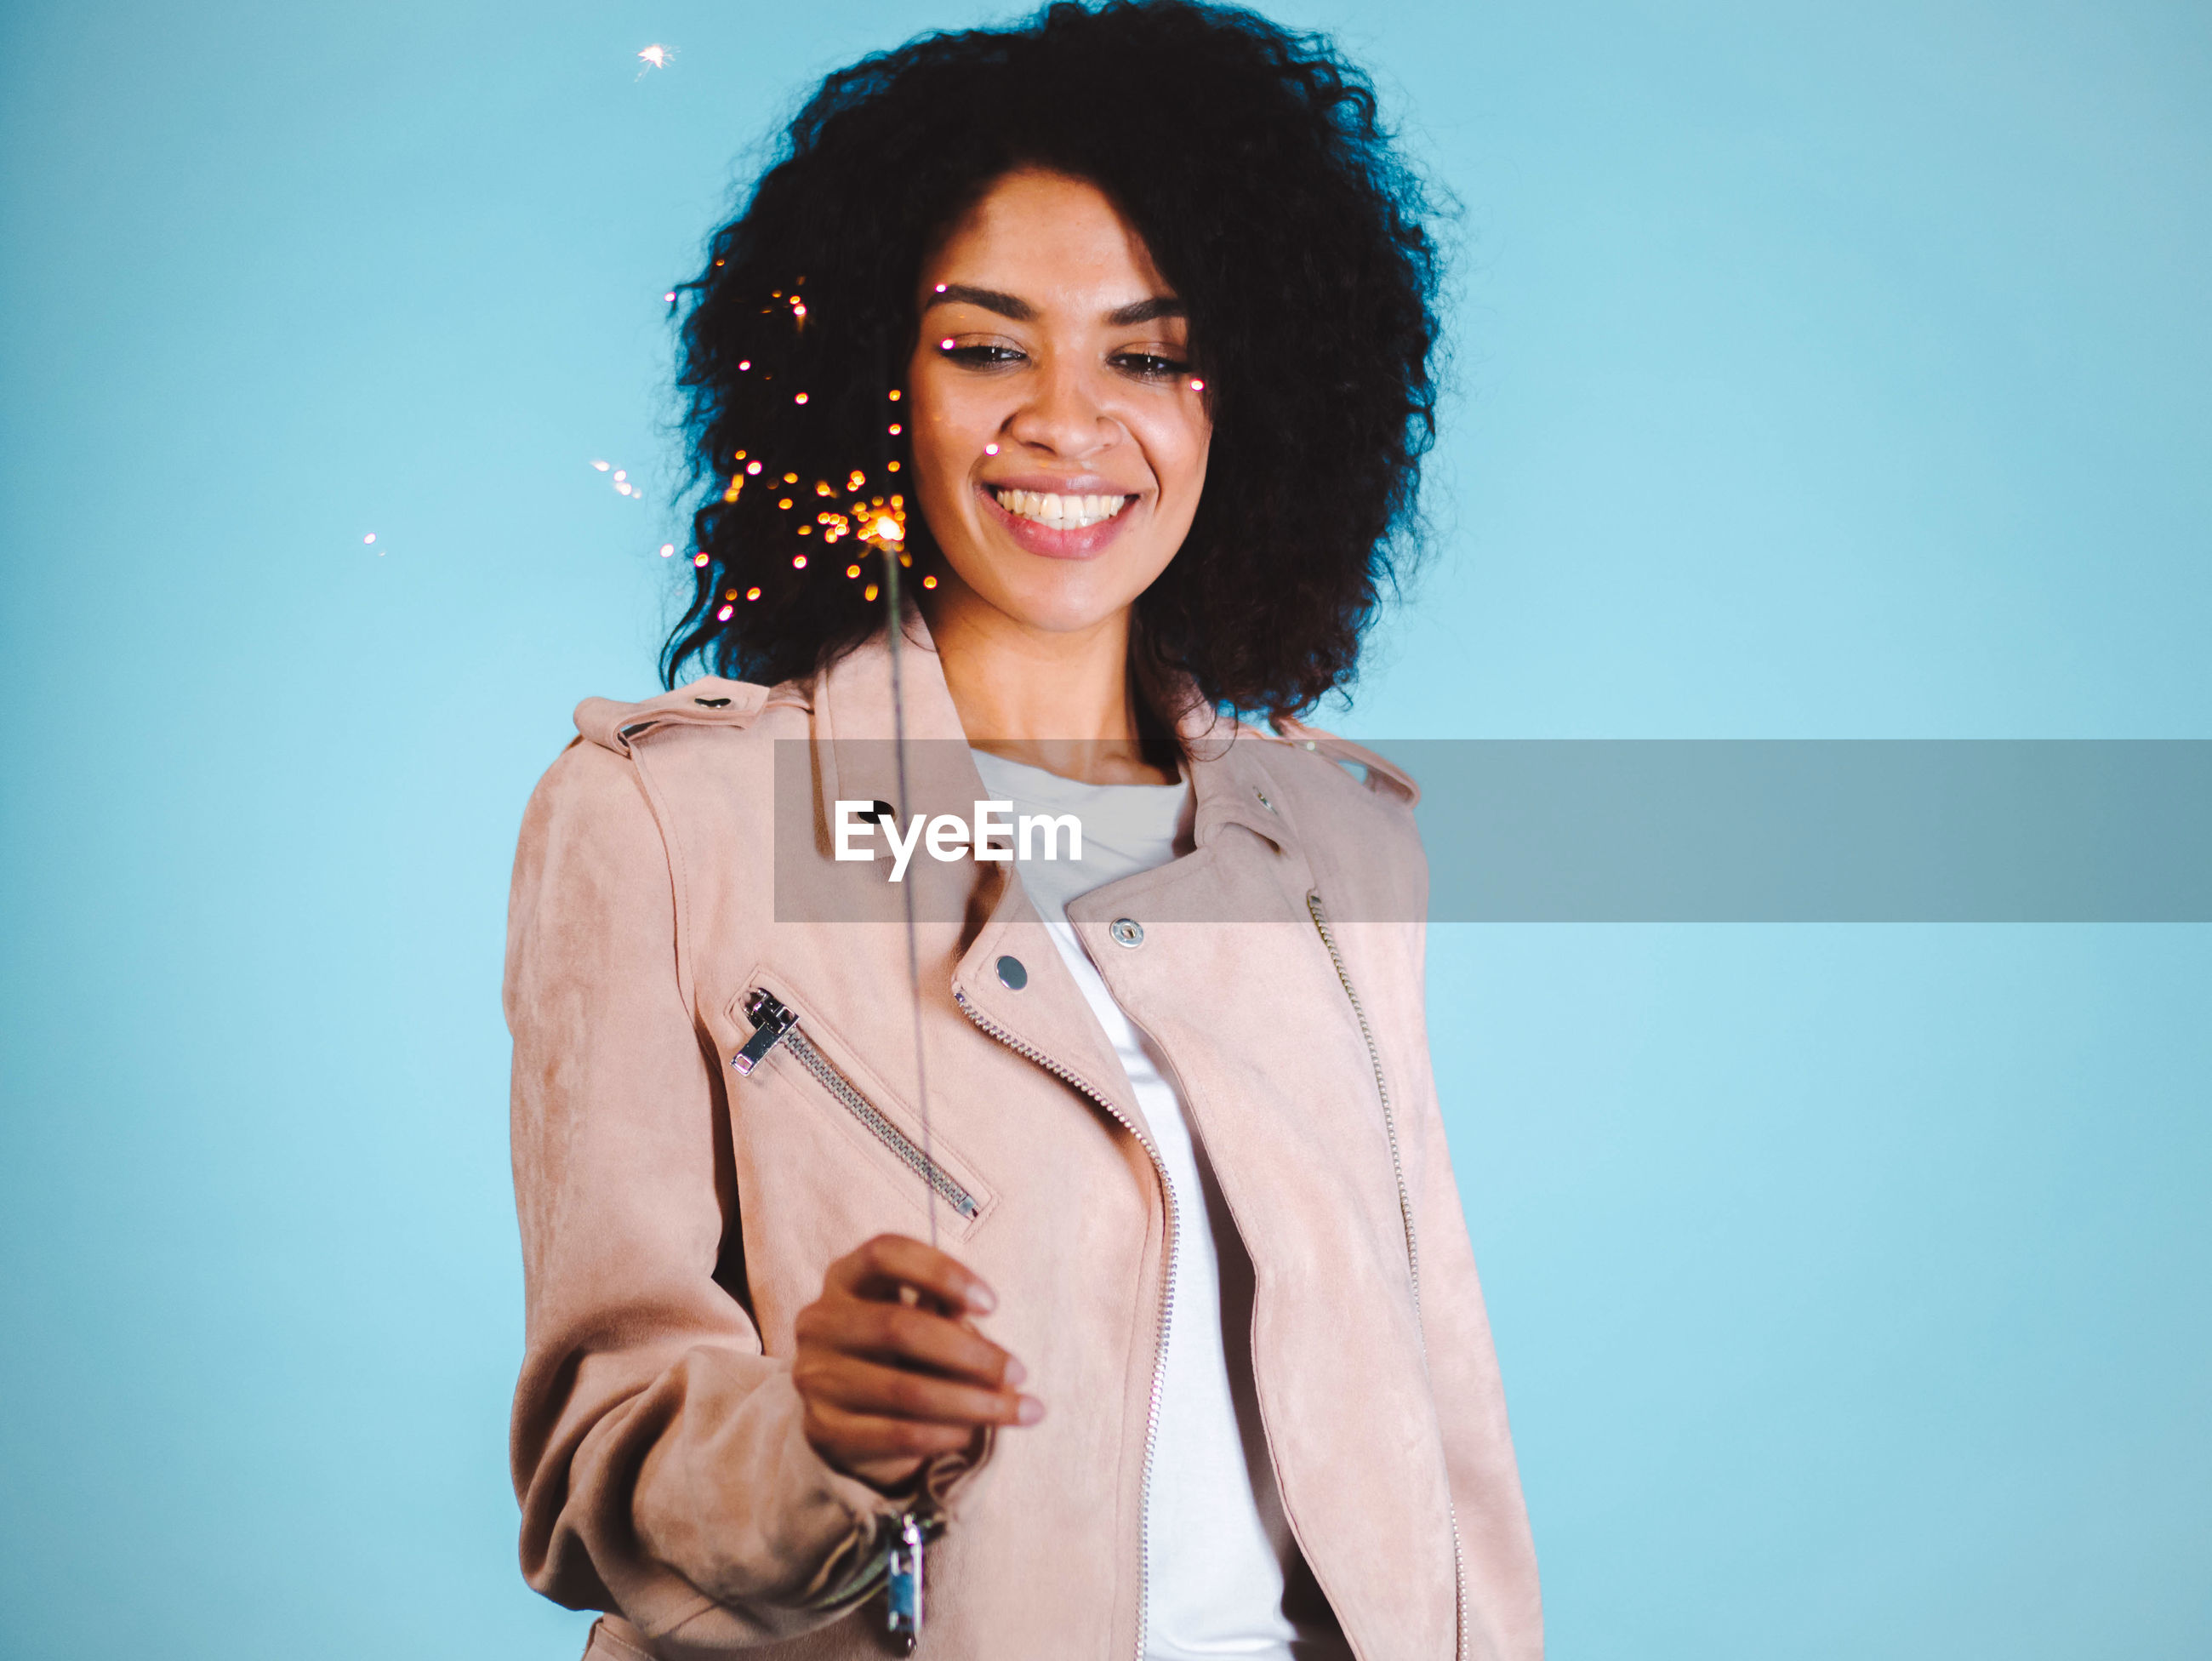 Smiling young woman holding sparkler while standing against blue background